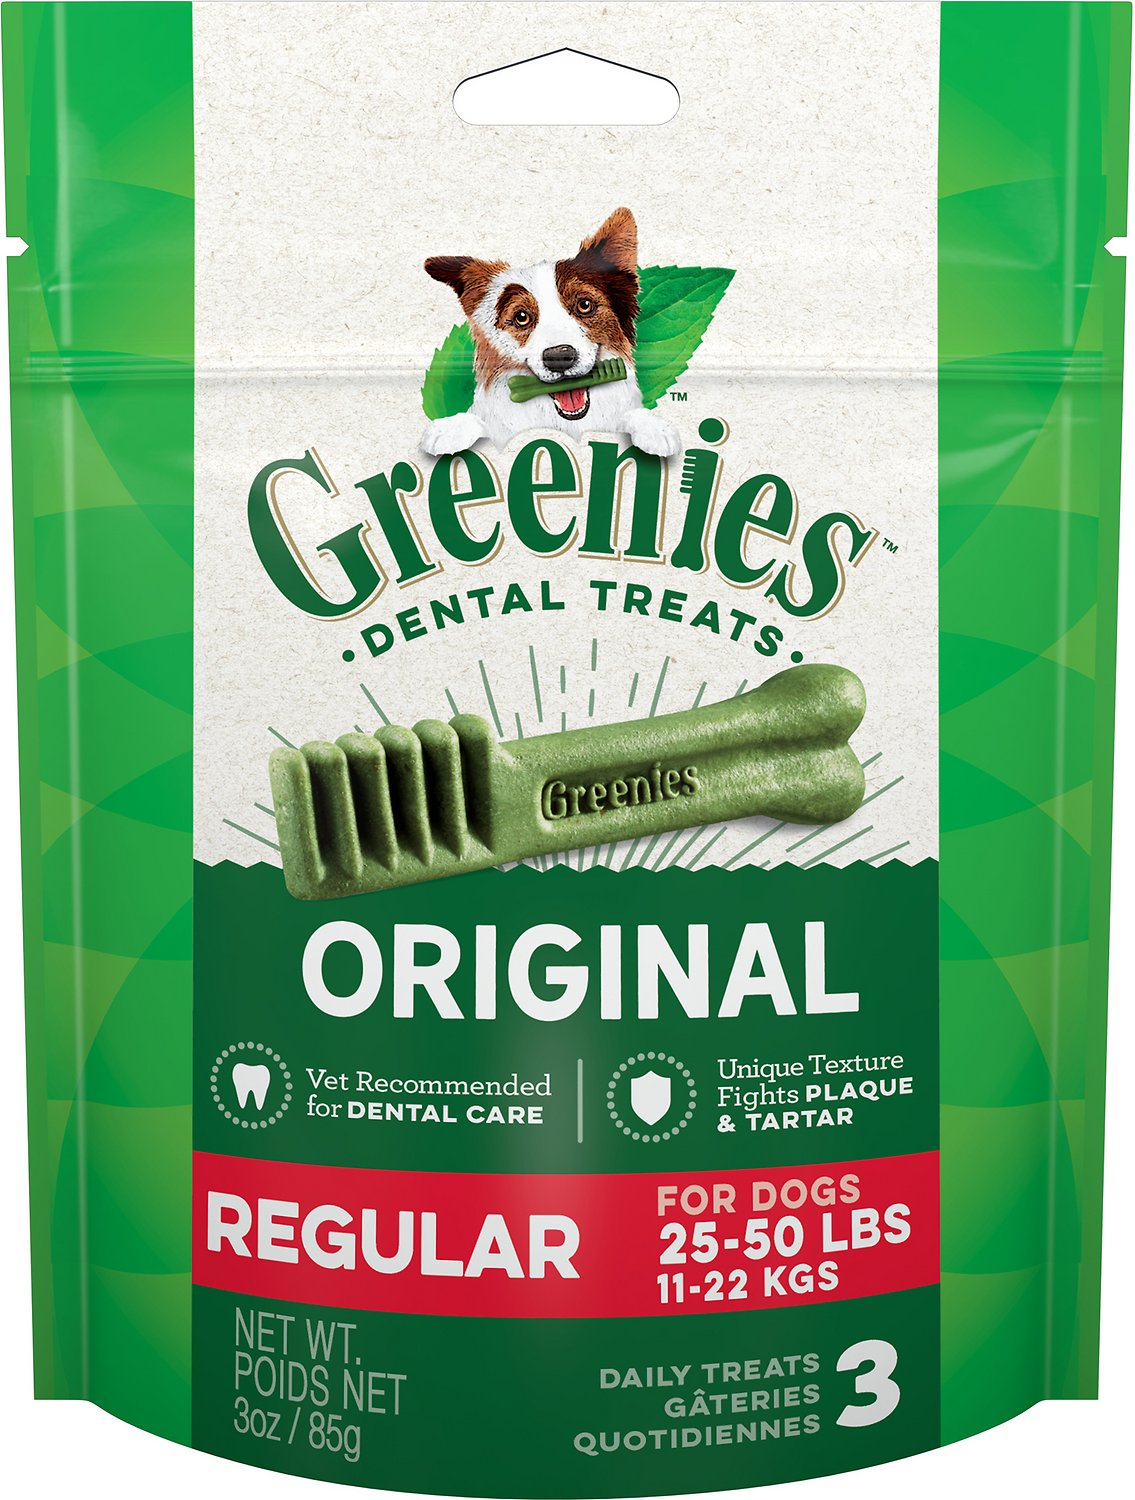 Greenies Original Regular Dental Dog Treats, 3-count